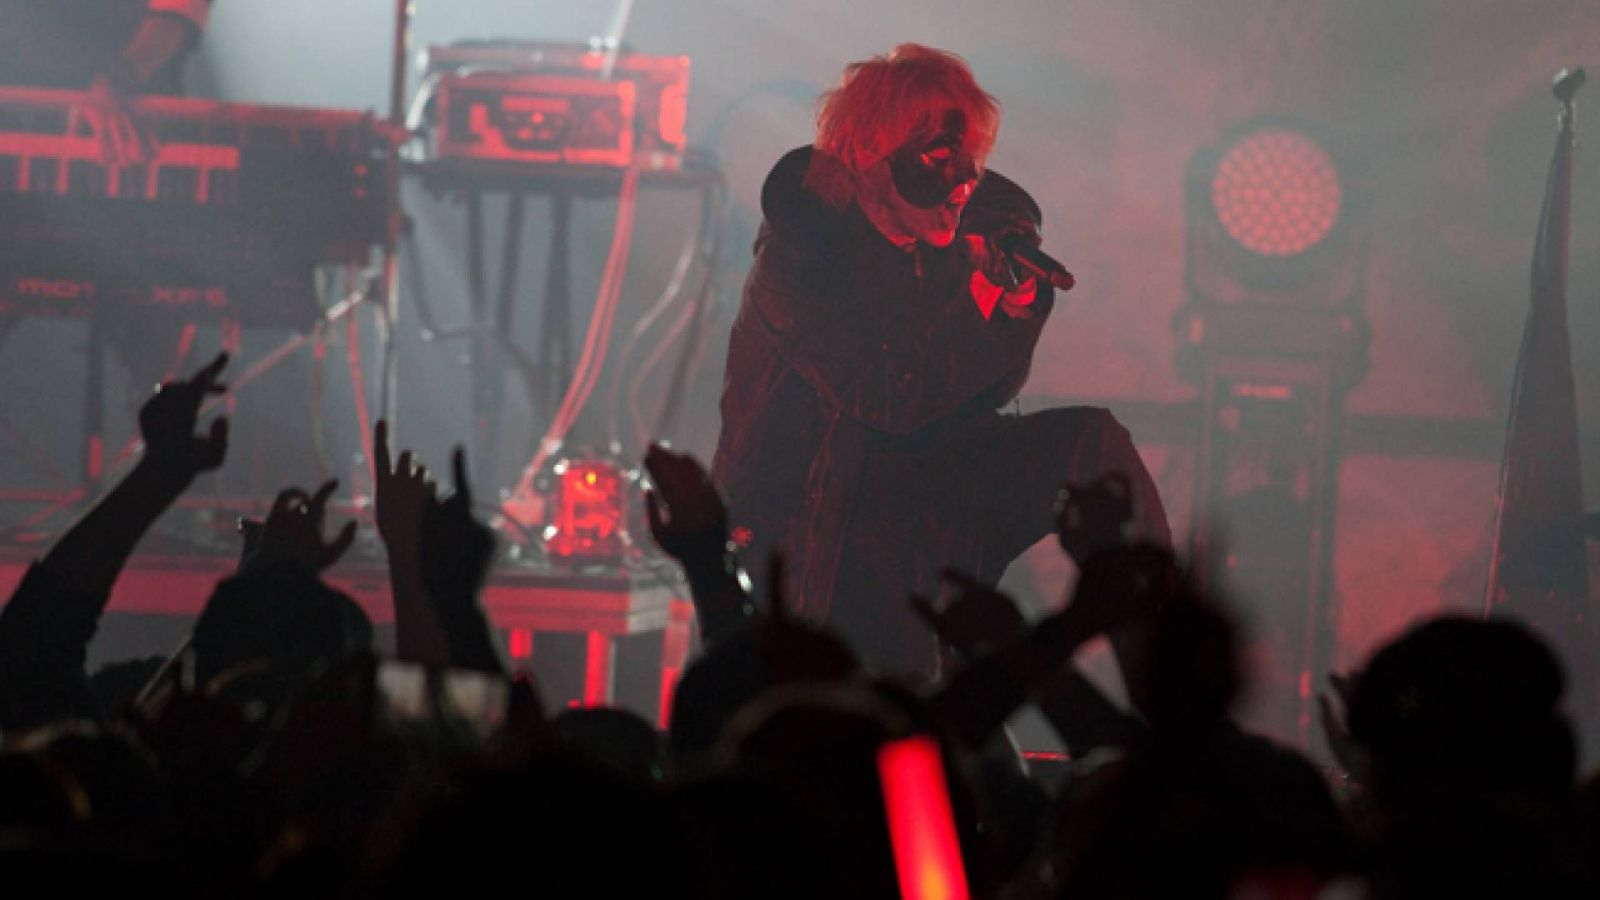 HYDE at Japan 2019 presents Japan Night in New York City